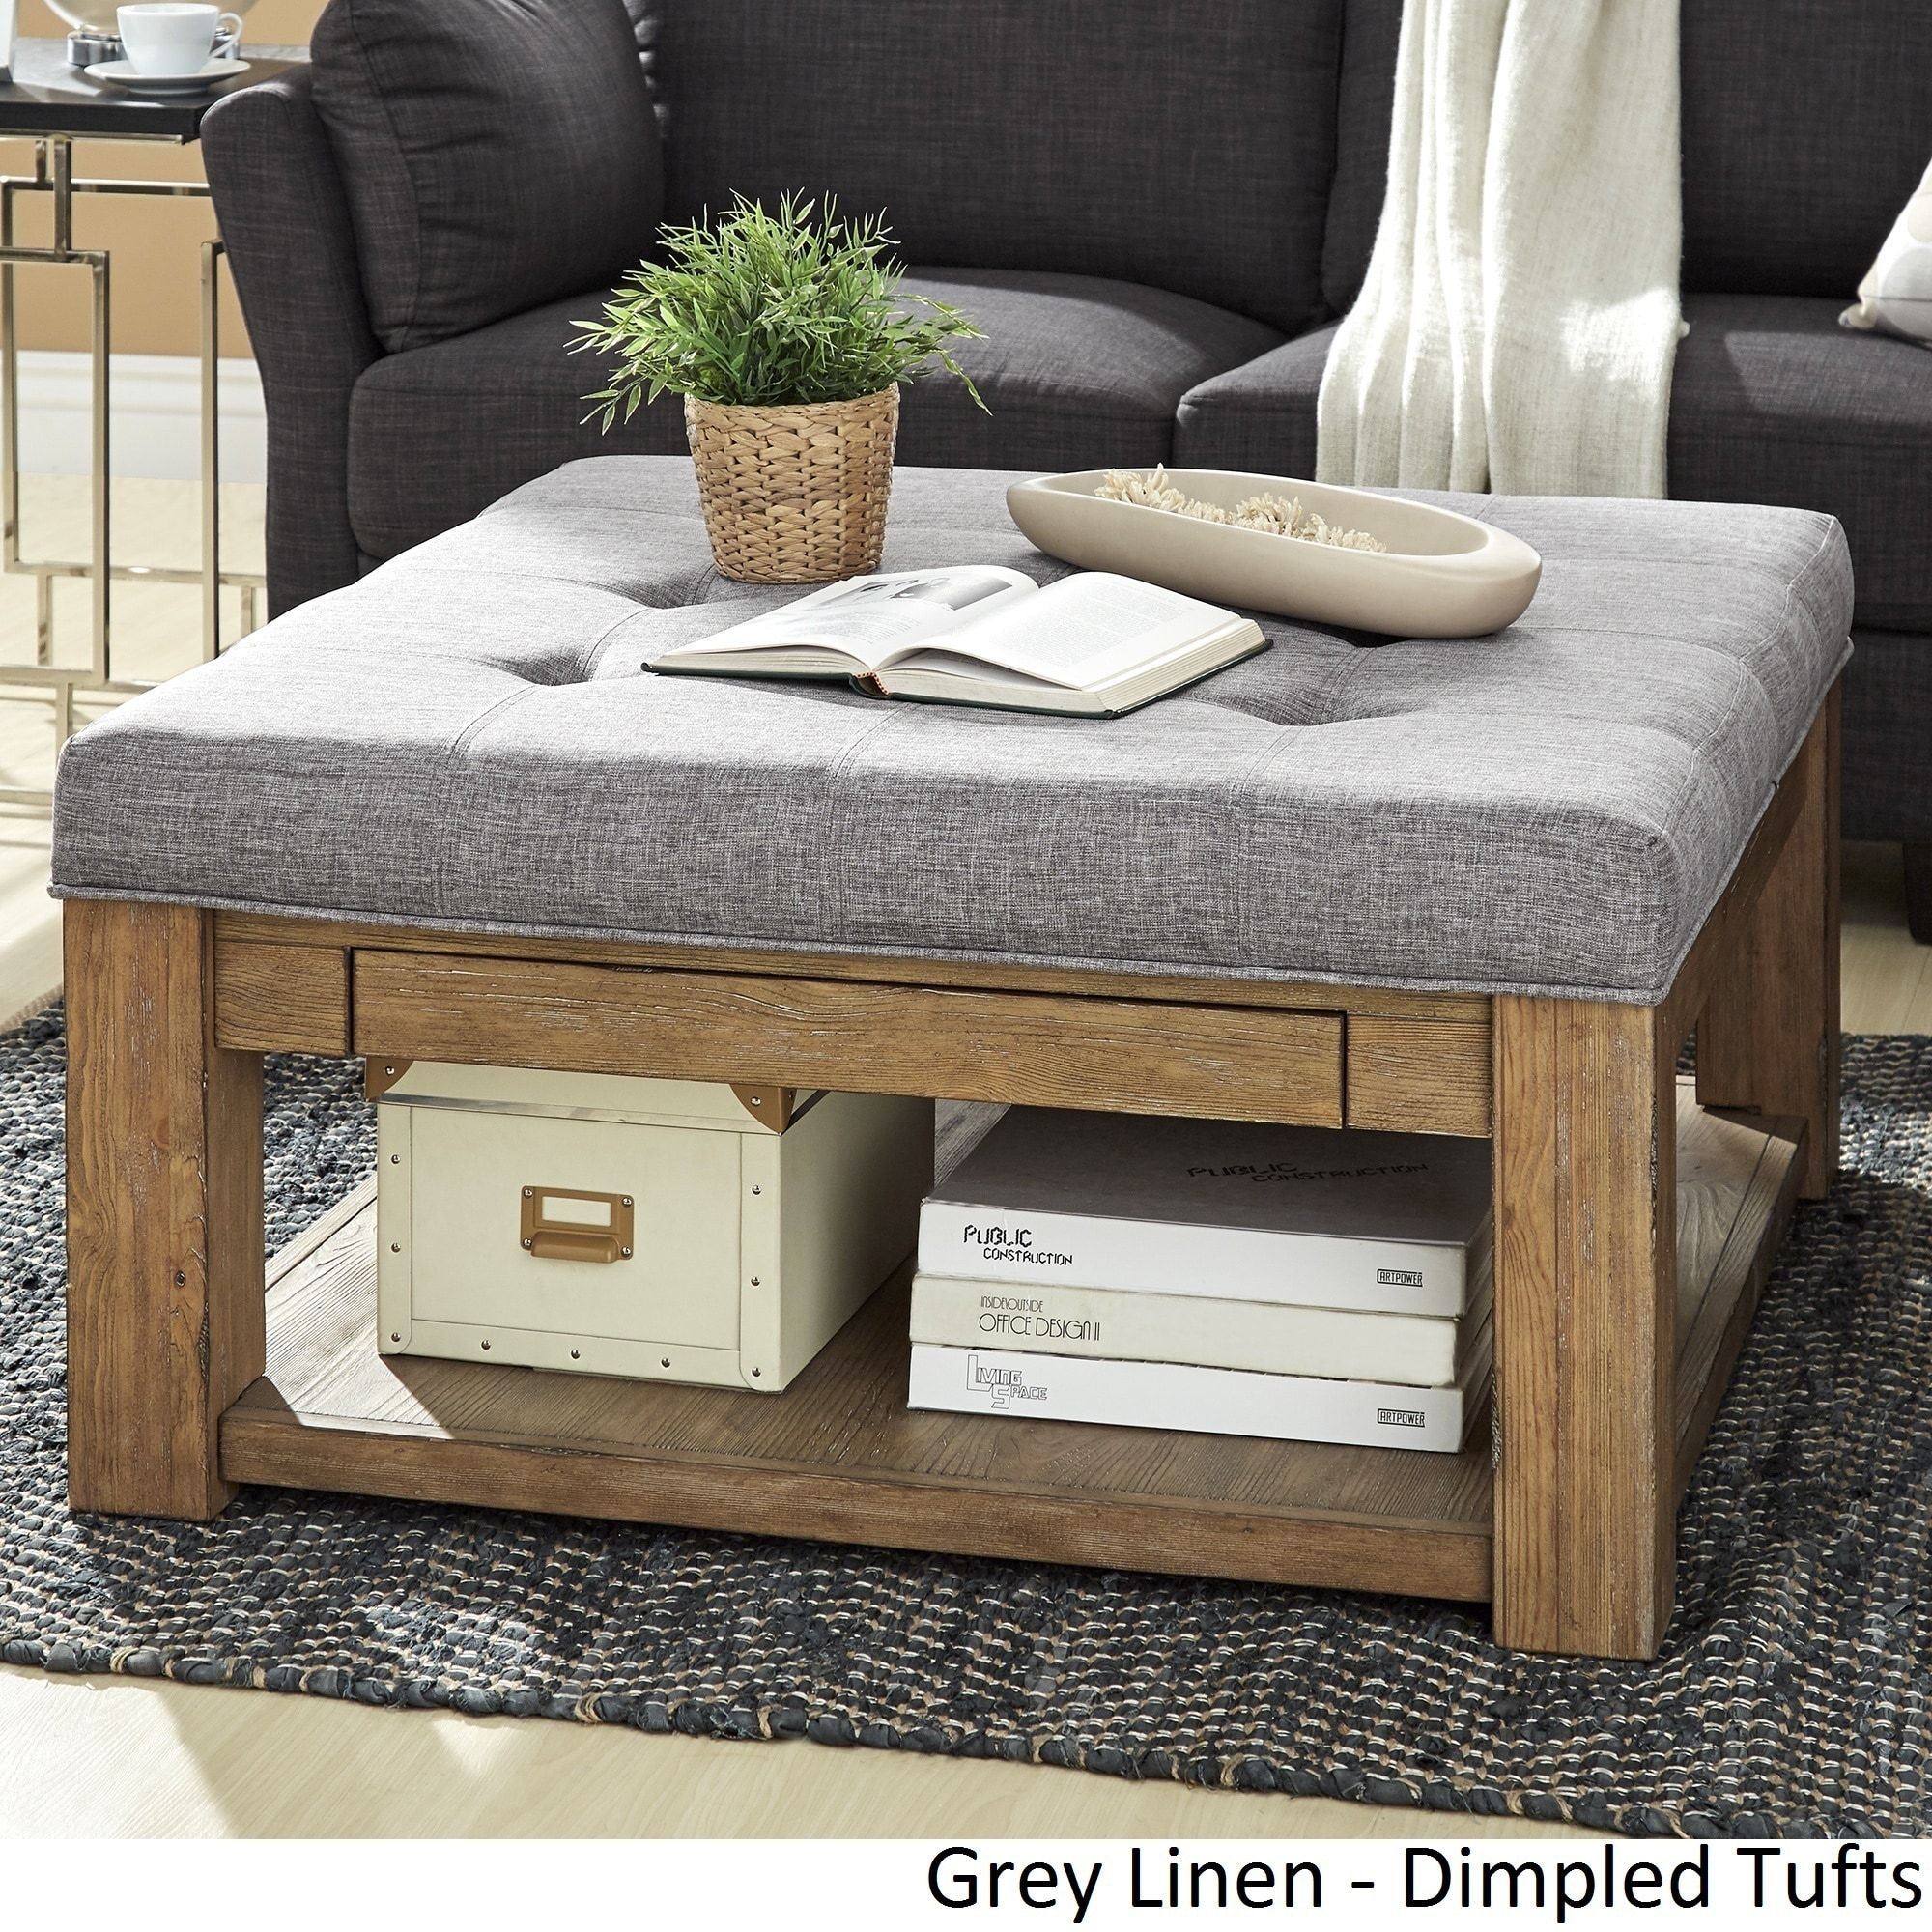 Lennon Pine Square Storage Ottoman Coffee Table by iNSPIRE Q Artisan  ([Beige Linen]- Smooth Top) (Fabric)